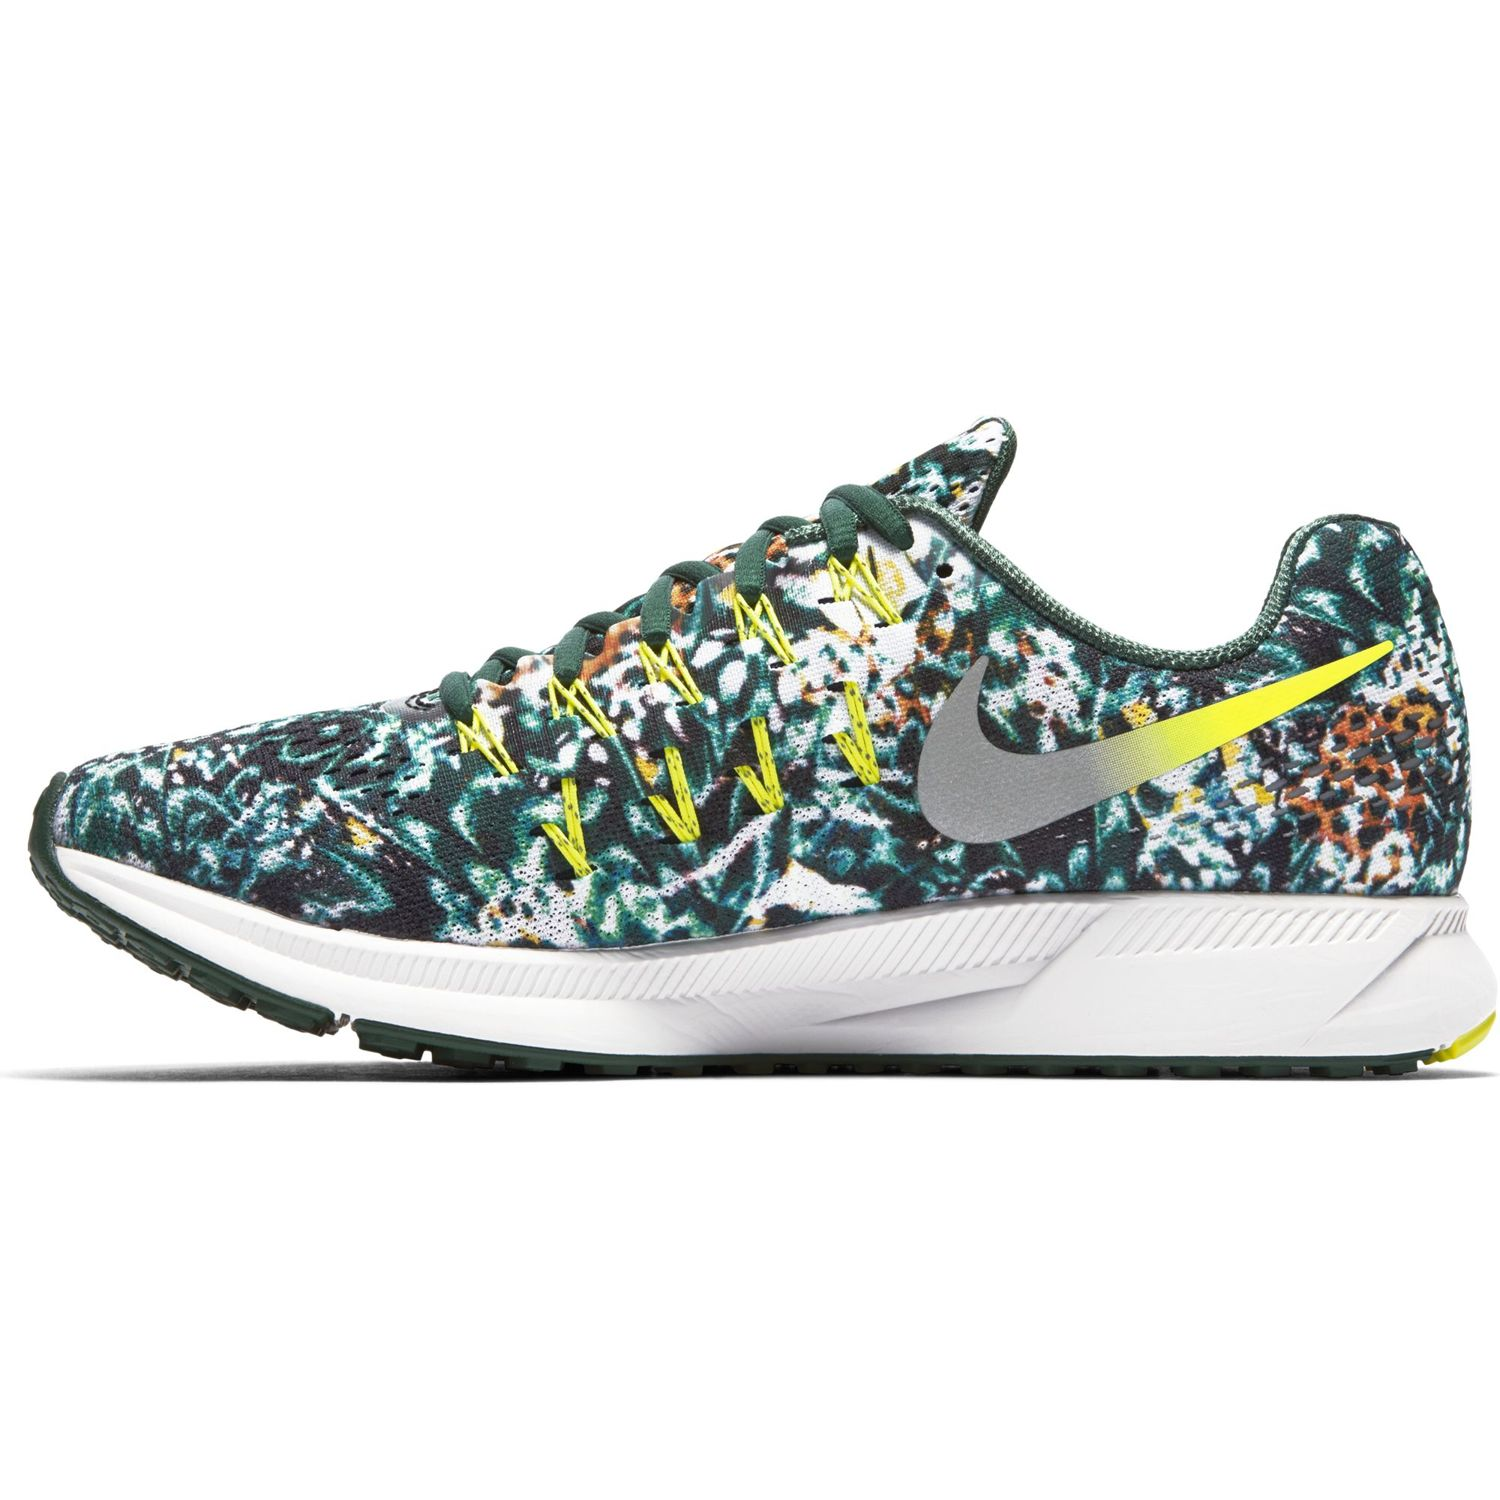 Buty do biegania Nike Air Zoom Pegasus 33 875799 400